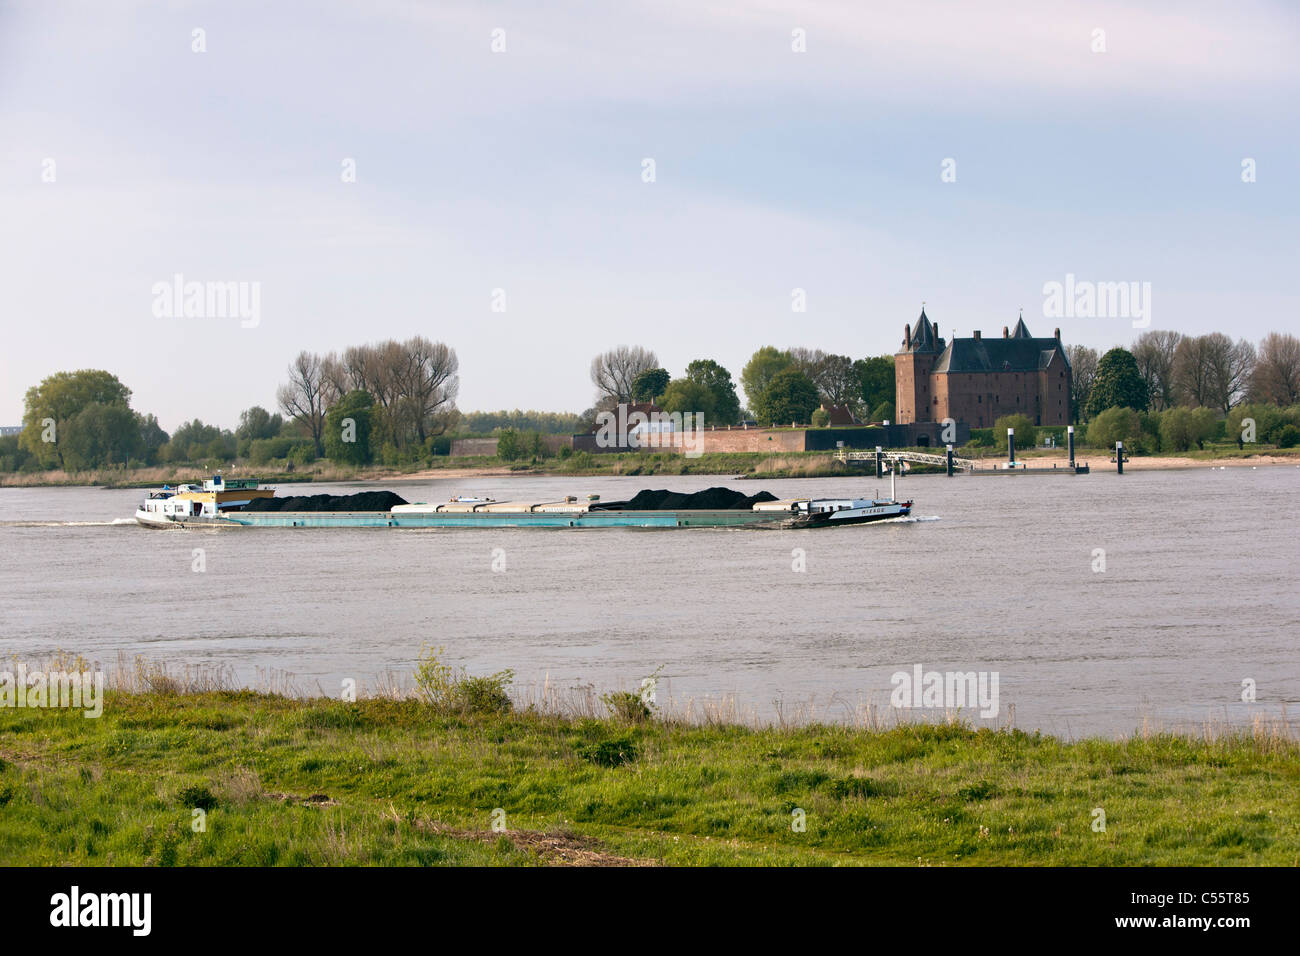 The Netherlands, Woudrichem, Loevestein Castle and cargo ship in river called Maas. - Stock Image